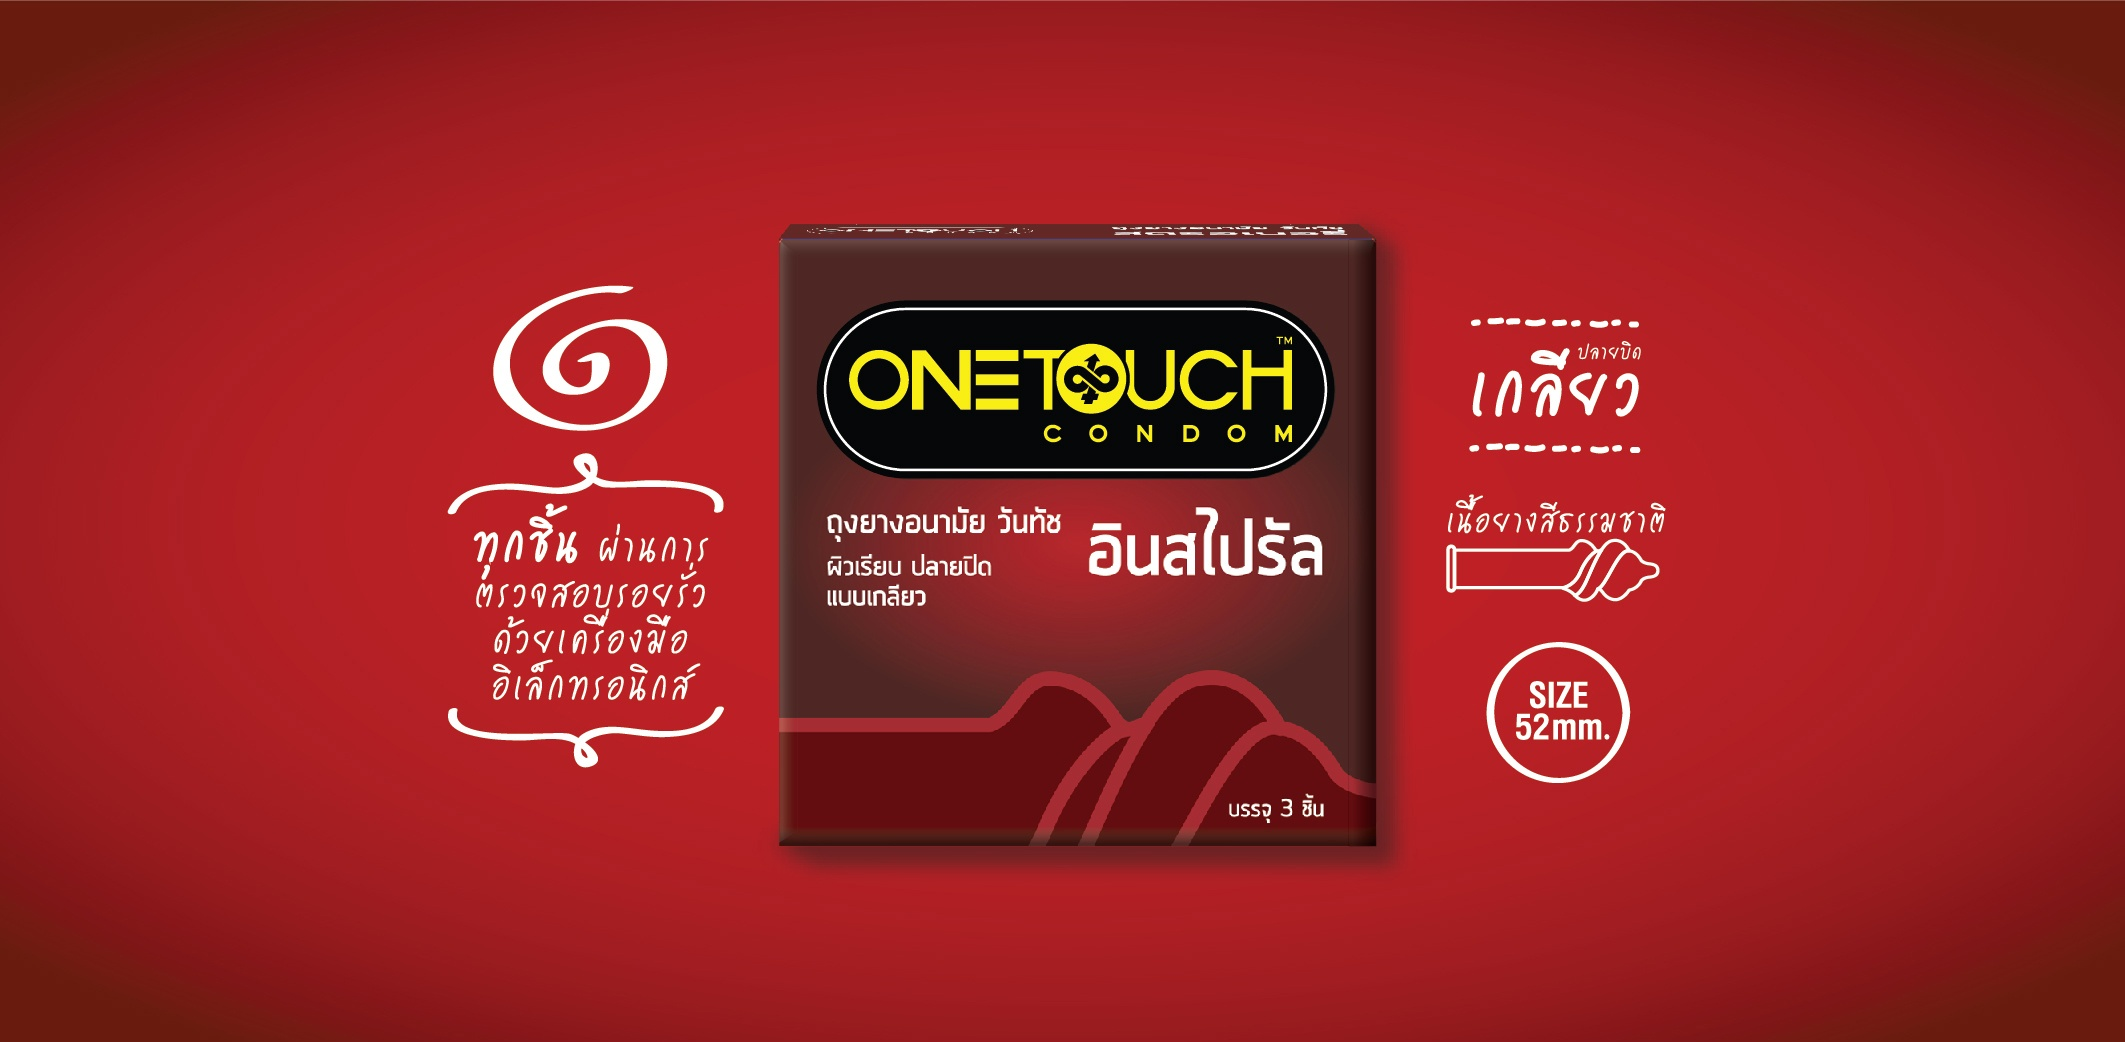 Onetouch Inspiral